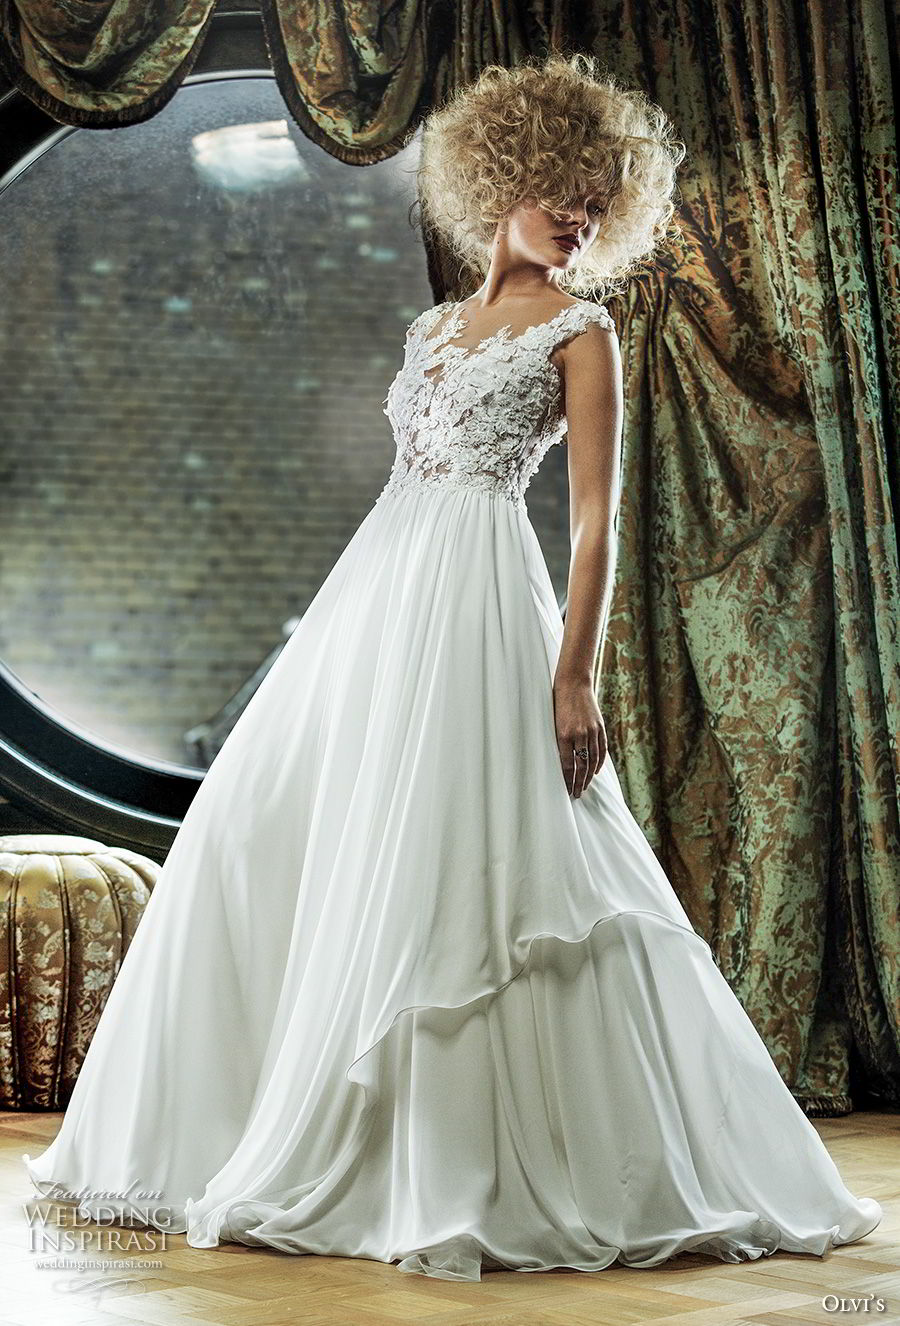 olvi 2019 bridal sleeveless v neck heavily embellished bodice romantic a line wedding dress sweep train (2) mv